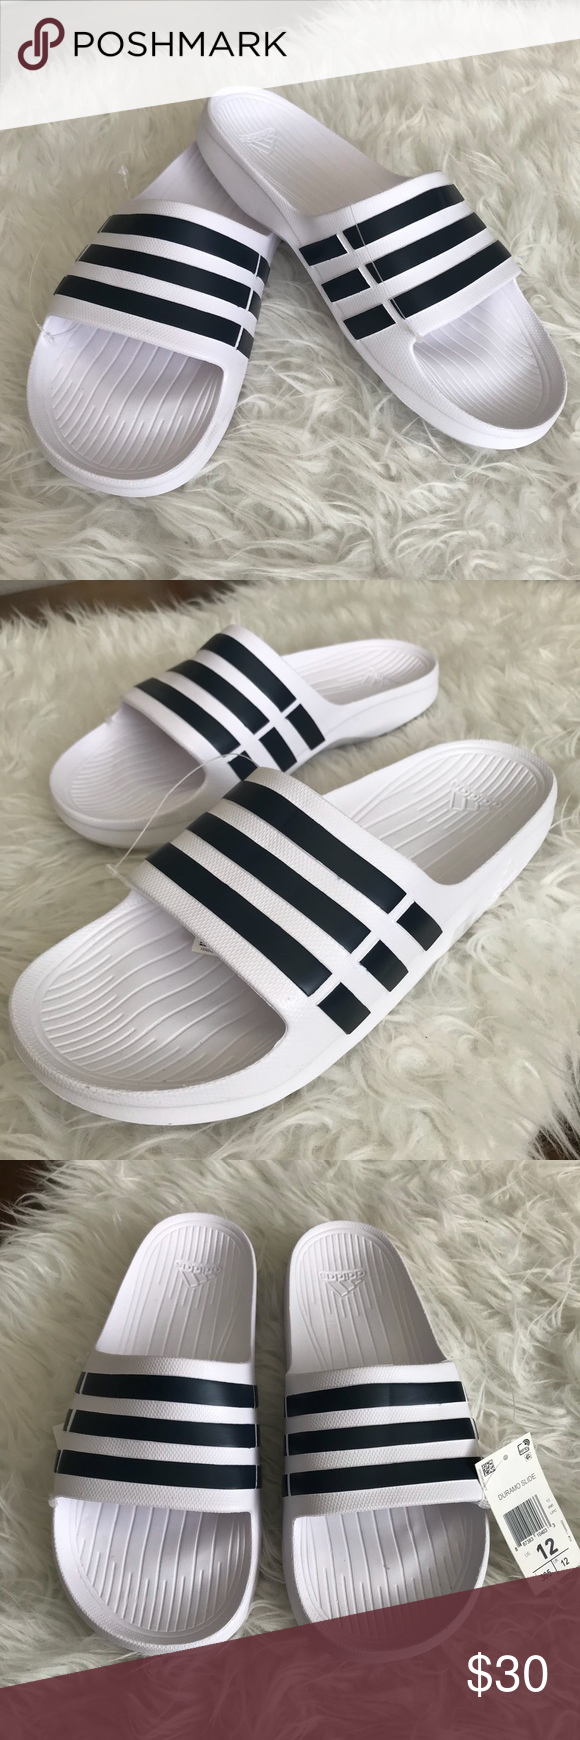 7385cb950 NWT Adidas White Navy Duramo Slides Men s Adidas Duramo Light Weight White  w  Navy Stripe Slides Size 12 Light weight